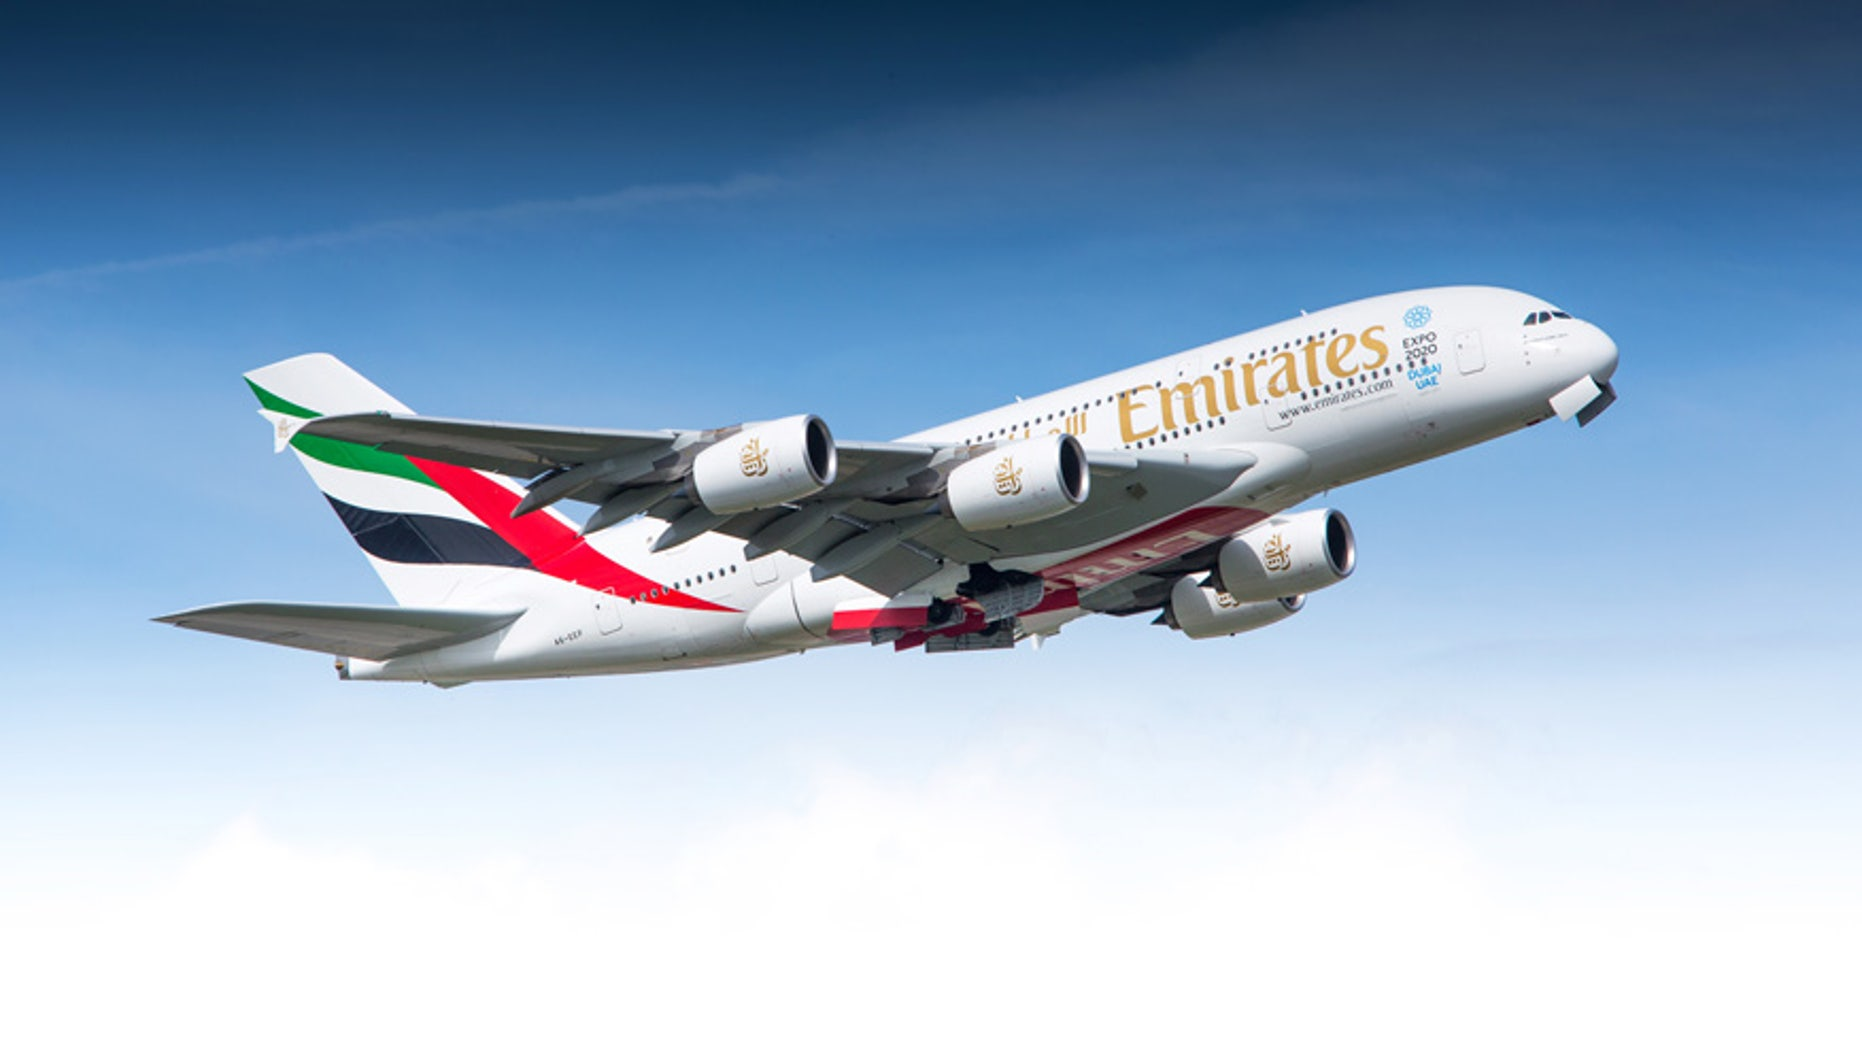 Emirates unveiled plans for a luxurious triple-decker plane on April Fools' Day.